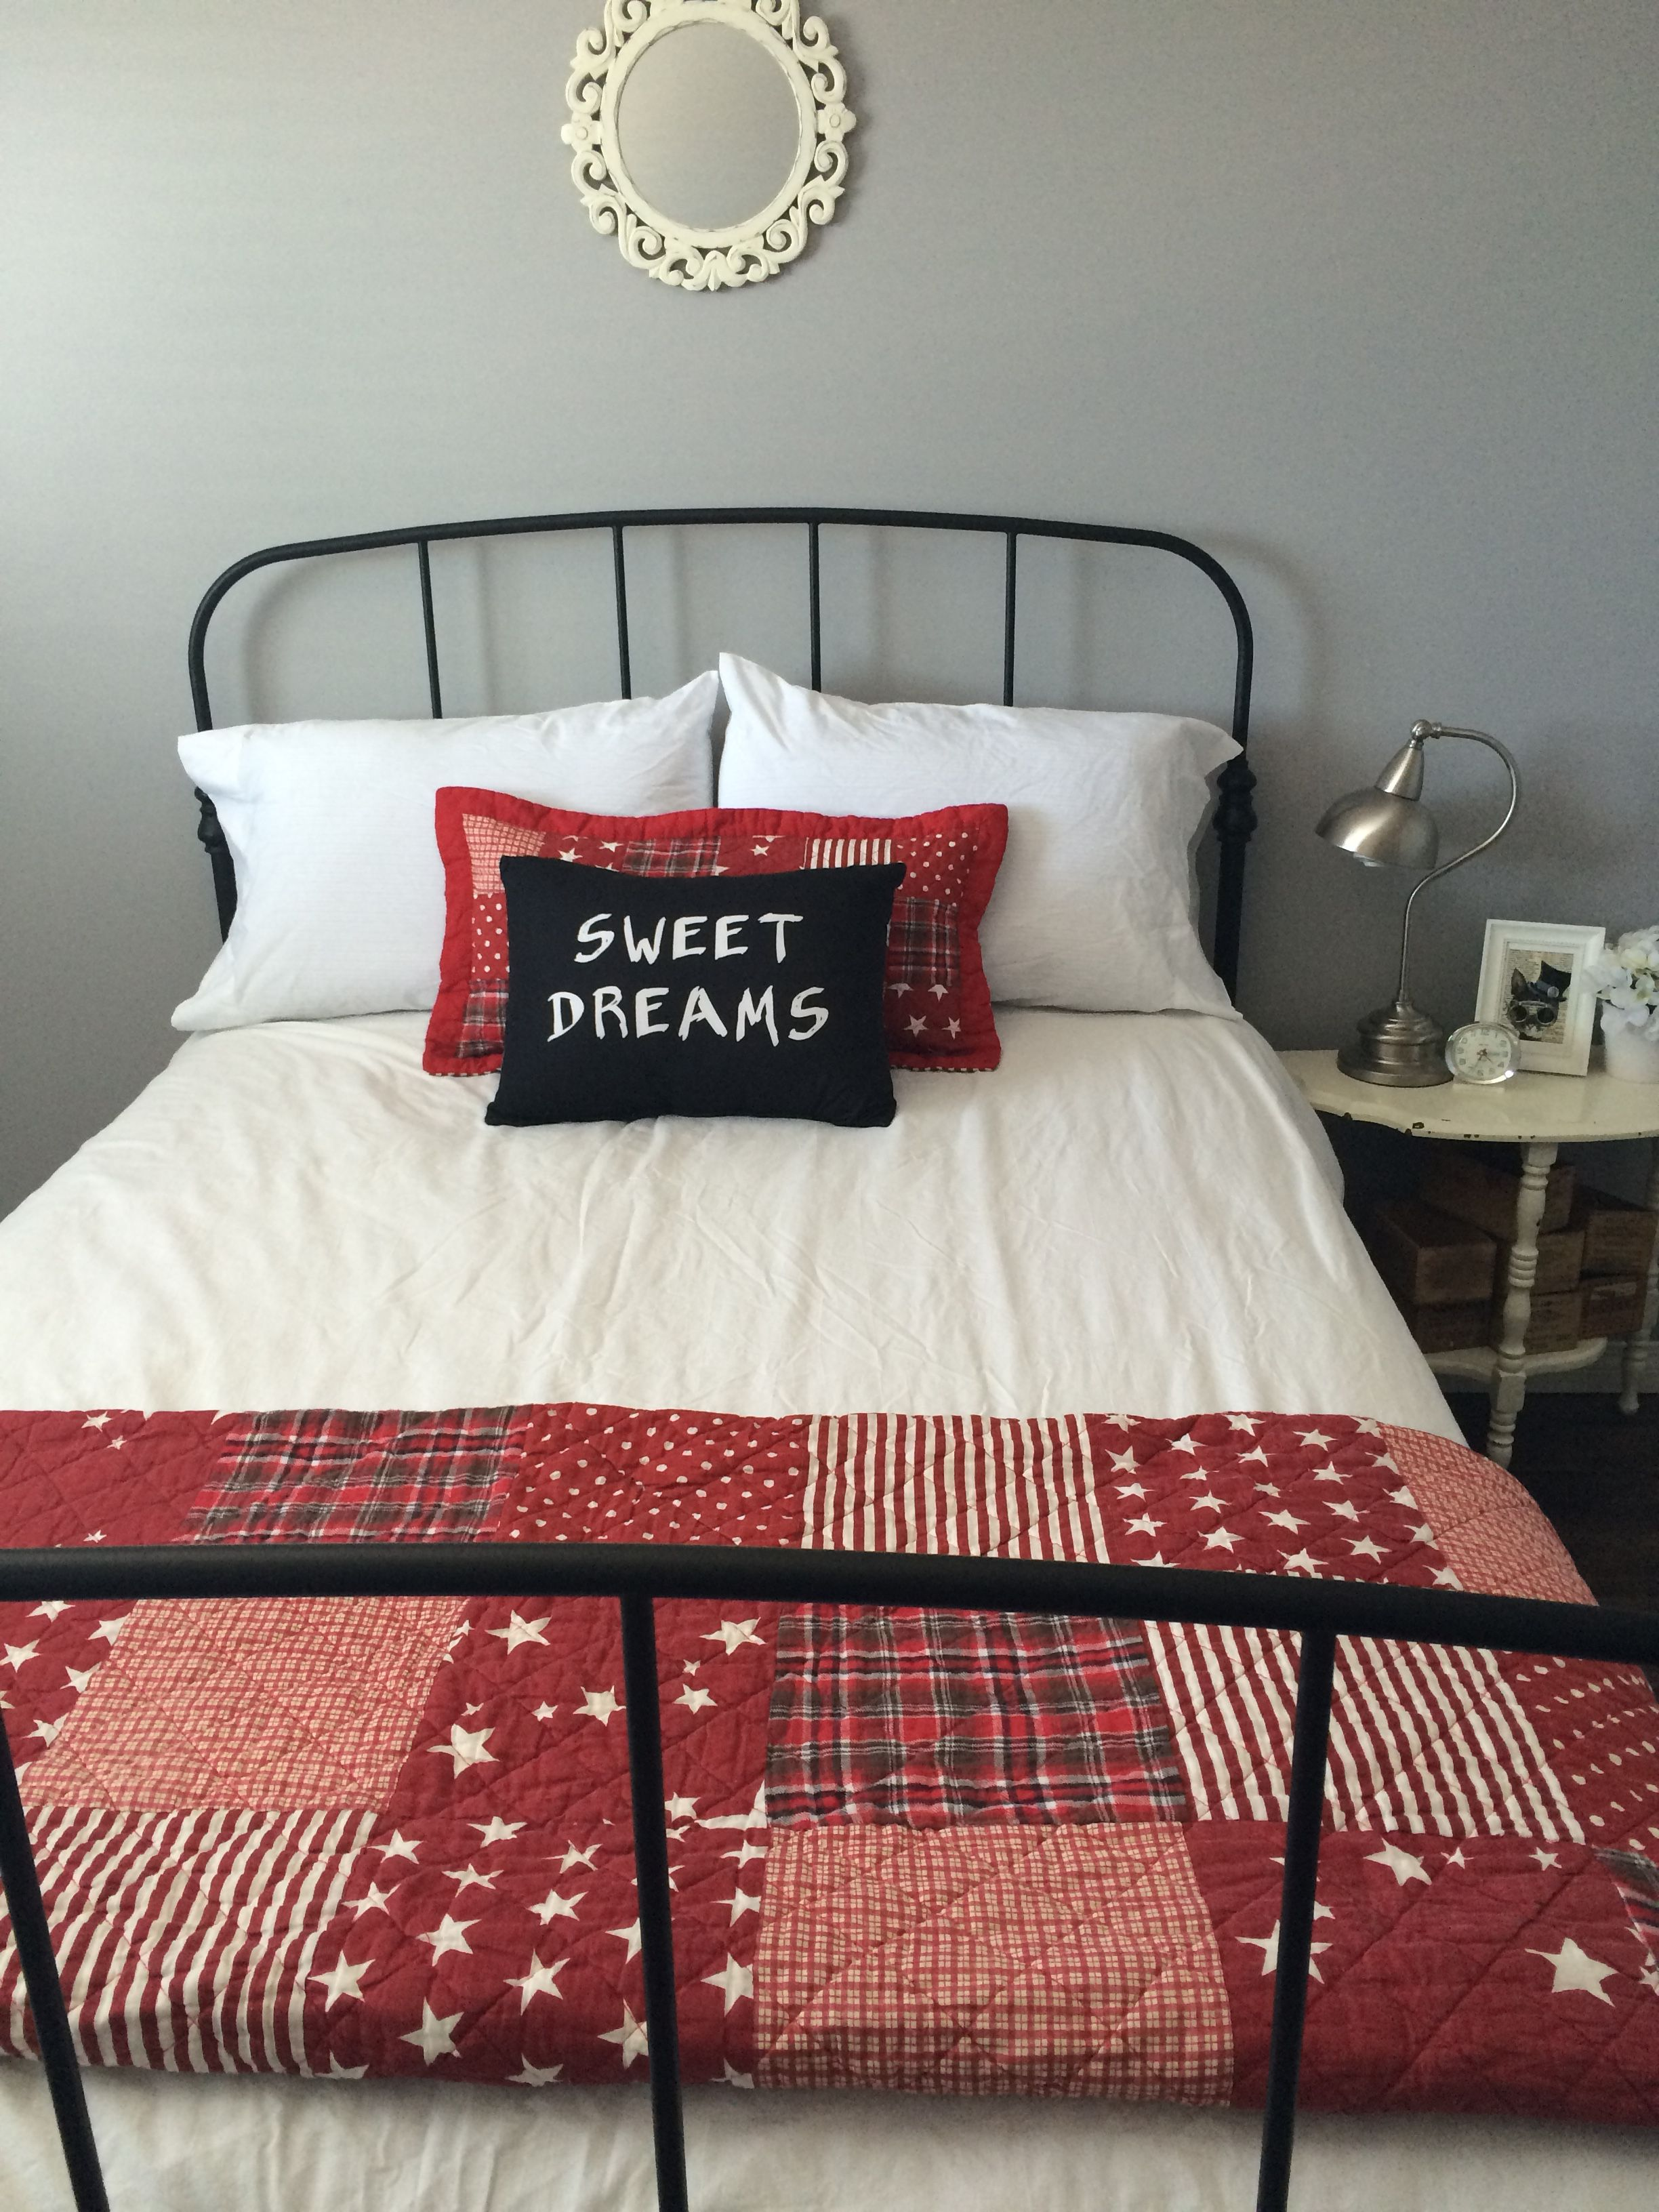 Ikea Lillesand Bed Frame Black White Red Plaid Decor Guest Room Decor Plaid Decor Bed